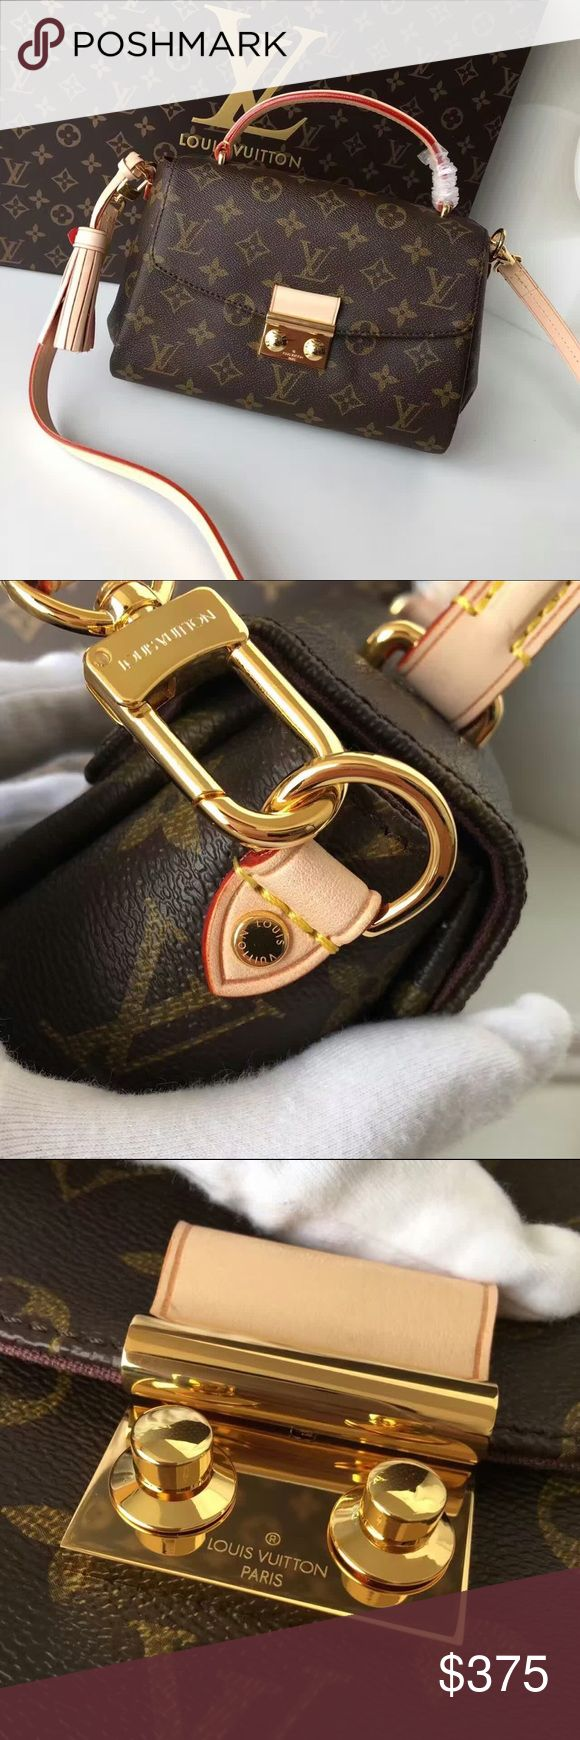 Louis Vuition Ensure top quality. Coming with box, dusterproof, receipt. Like it? Take it. :-) Worth the price. Louis Vuitton Bags Crossbody Bags